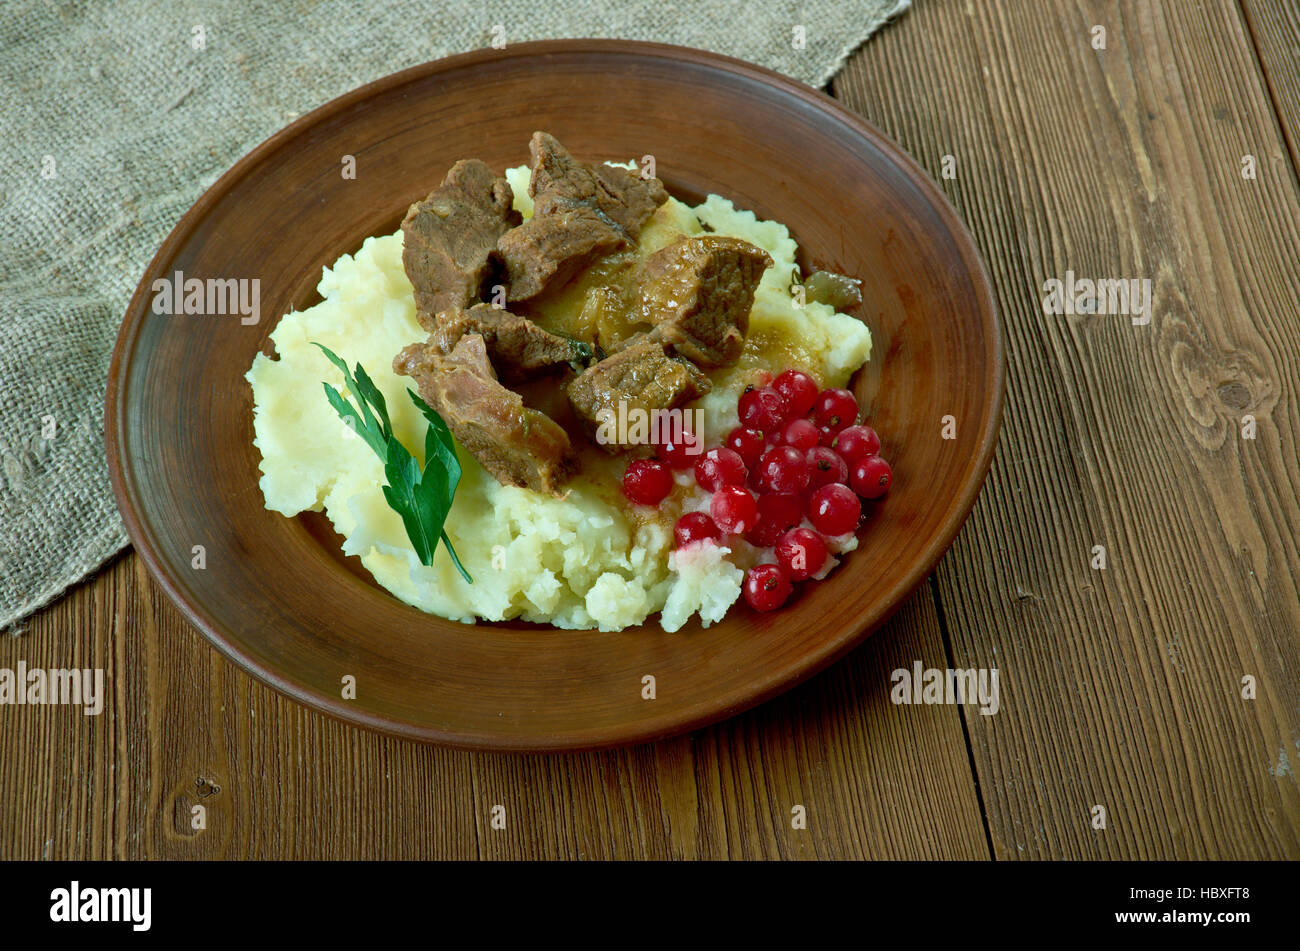 Sauteed reindeer venison steak served with mashed potatoes and lingonberry  -   traditional meal from Lapland, especially - Stock Image